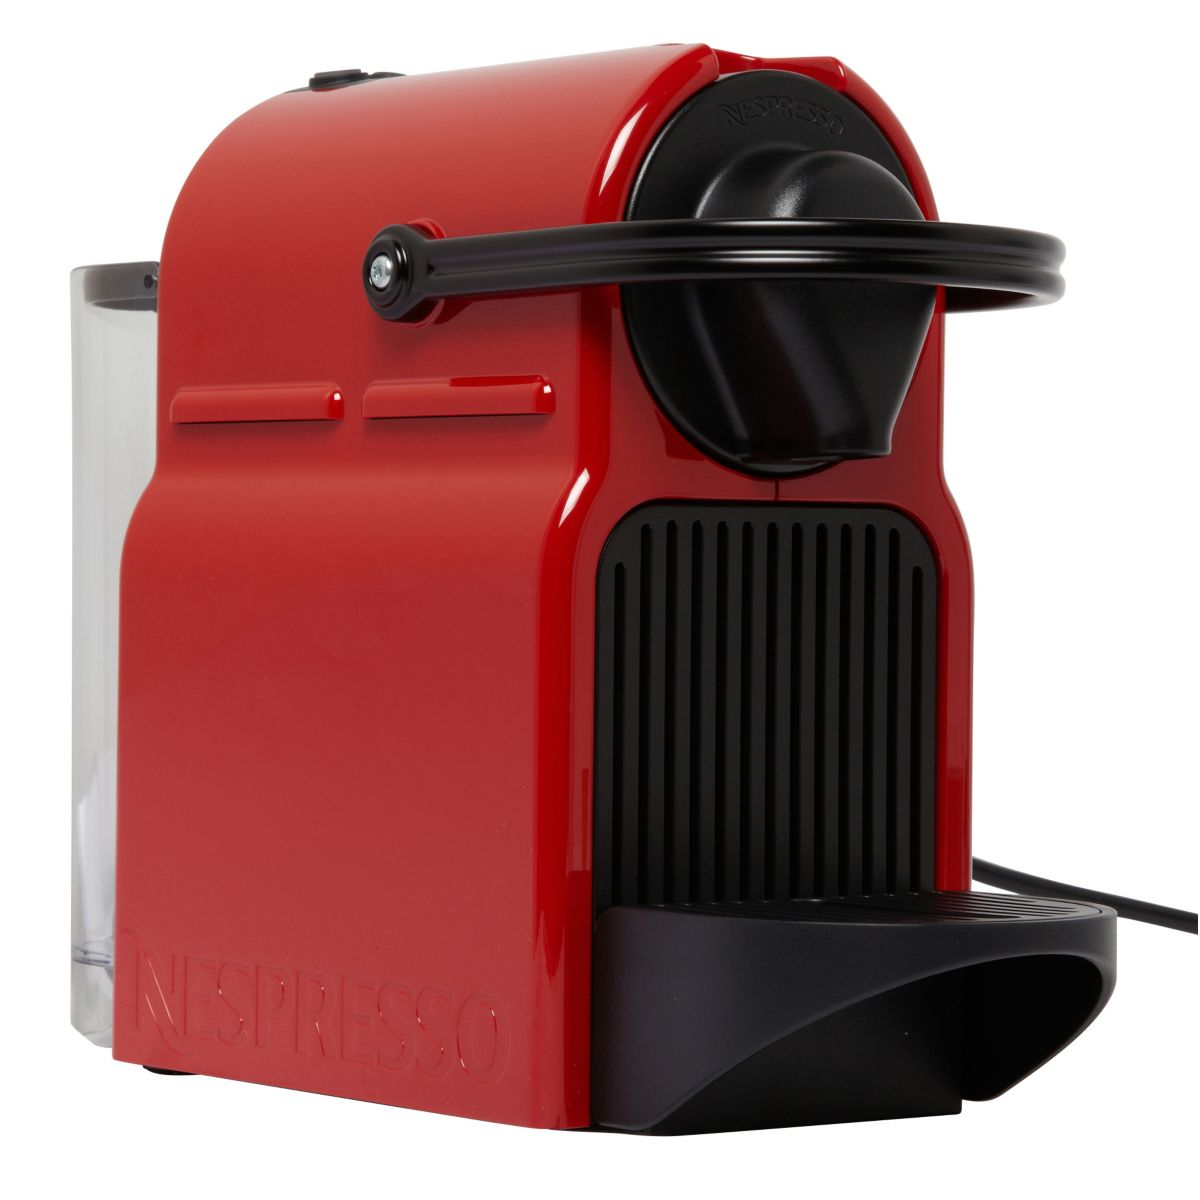 Nespresso KRUPS Inissia Red Ruby YY1531FD